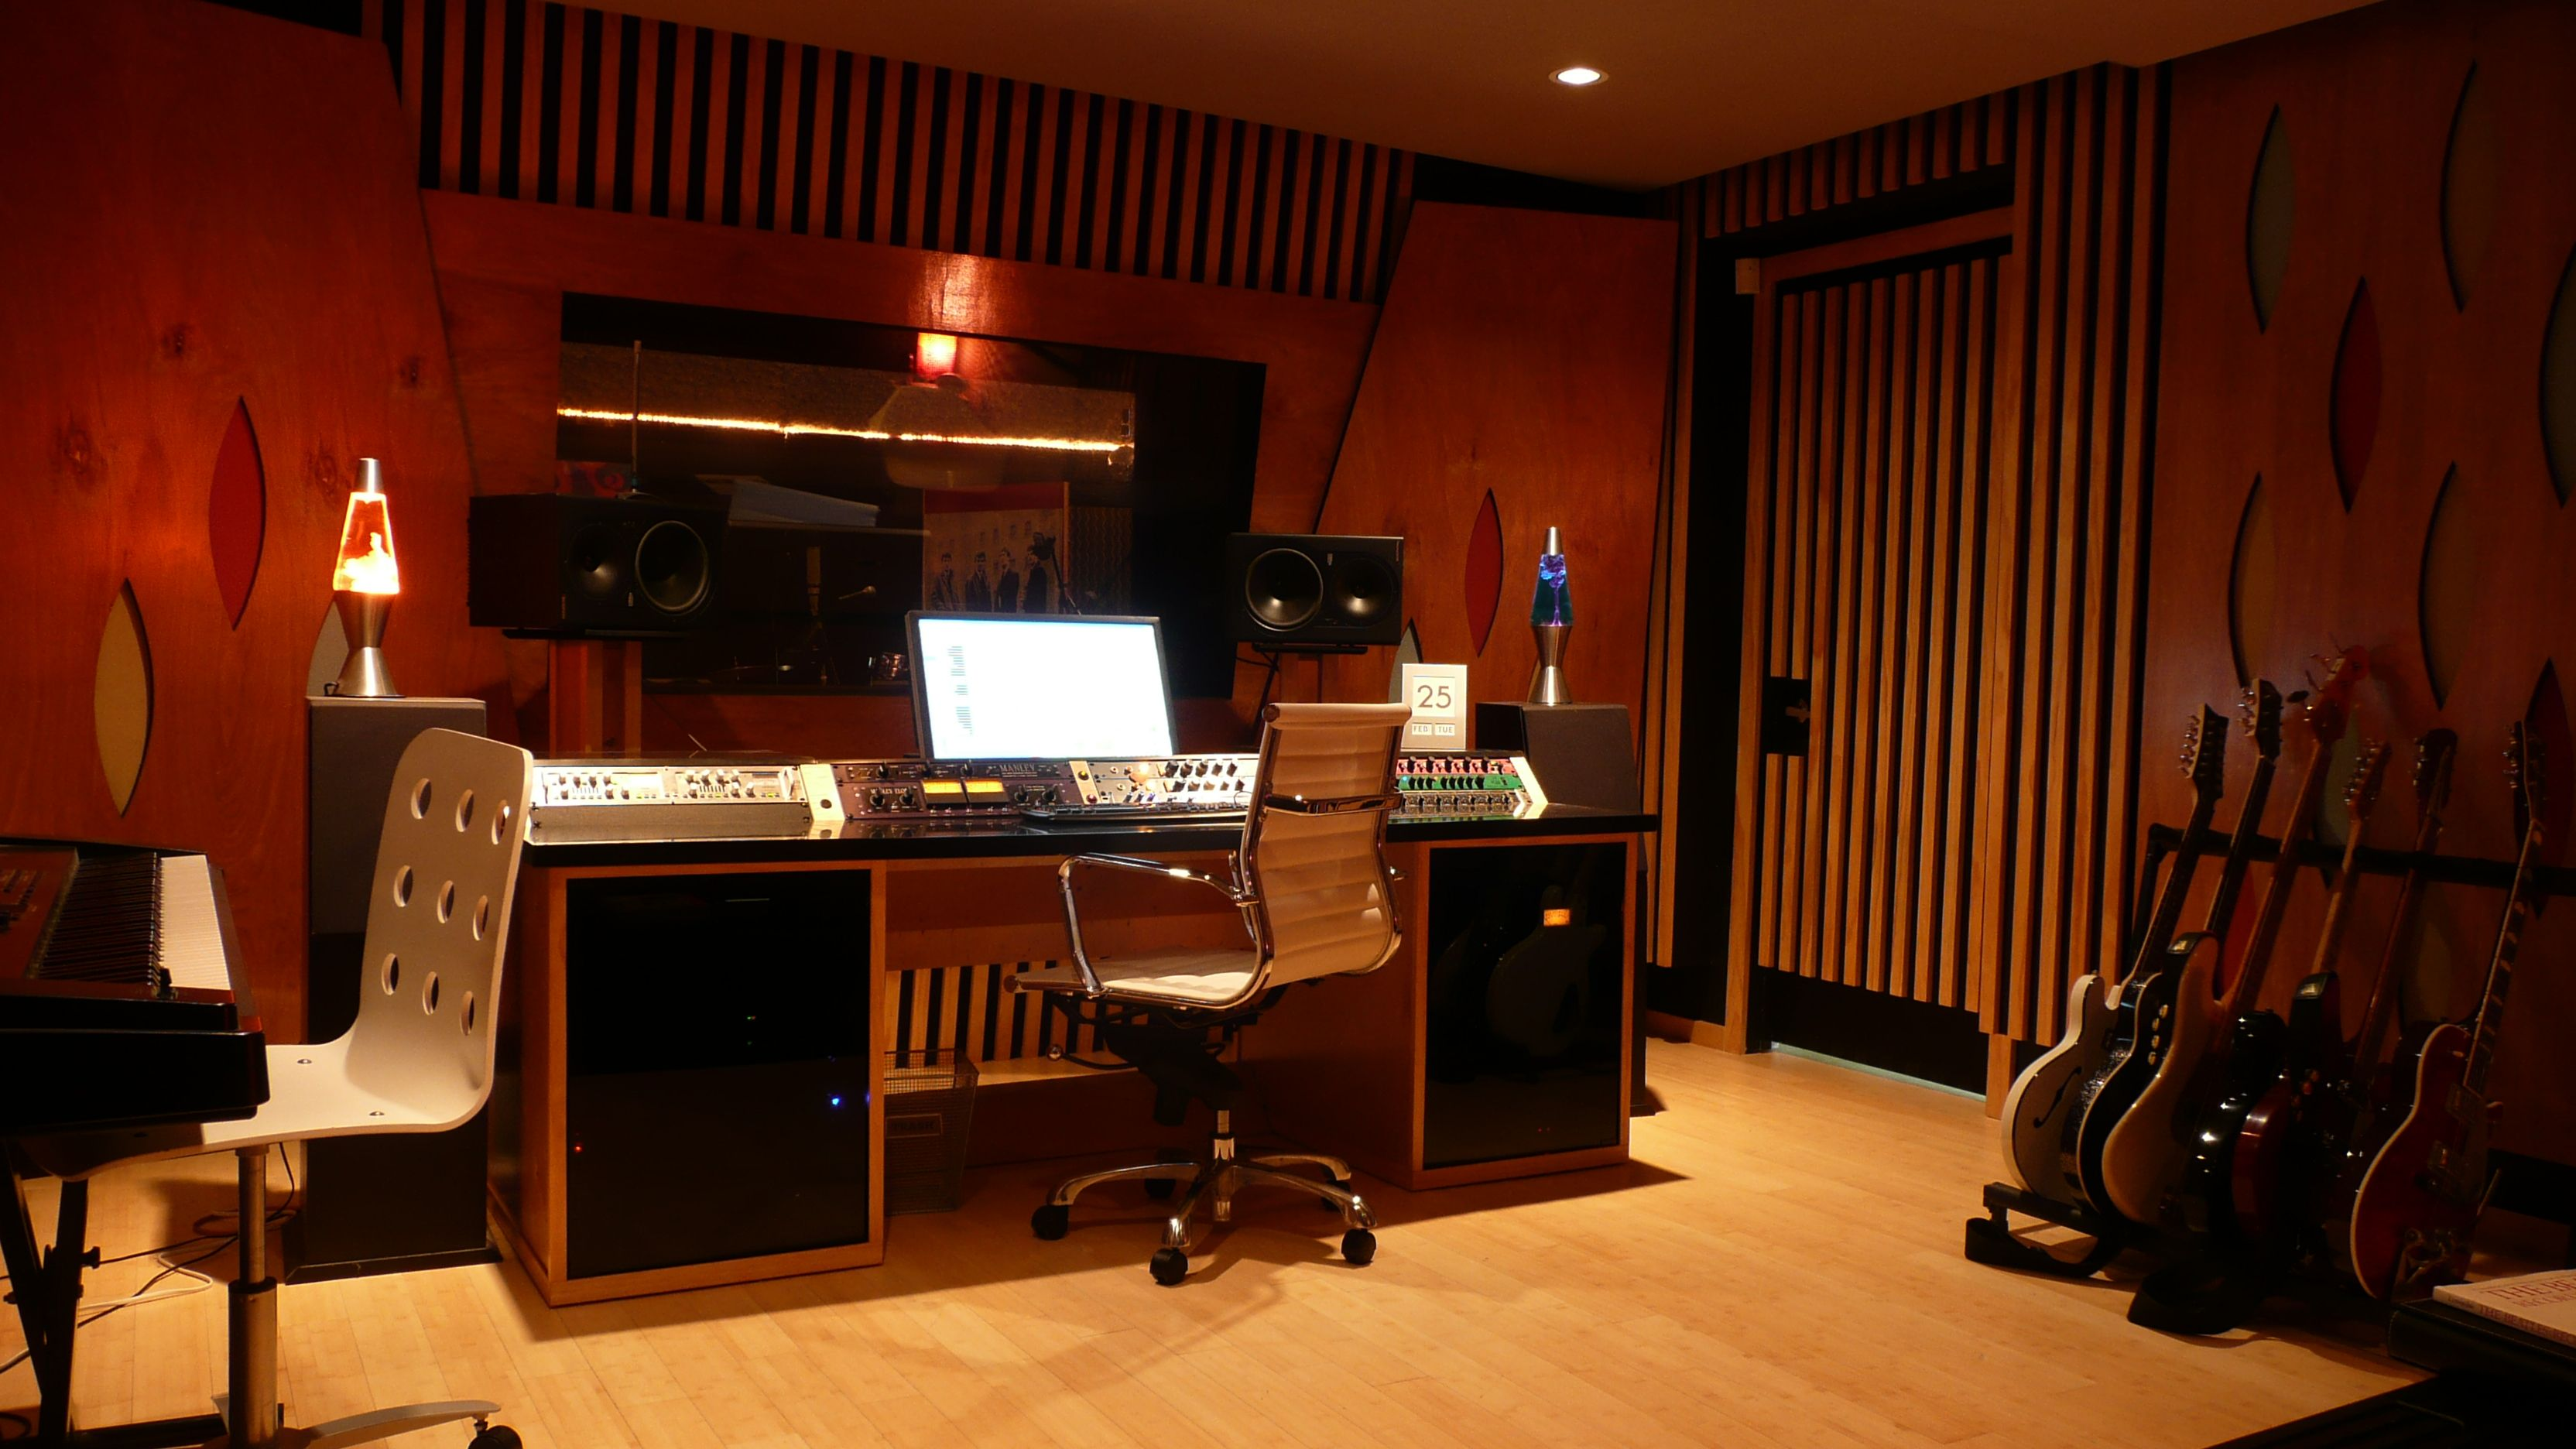 One of my dreams is to one day have a slick looking studio in my ...